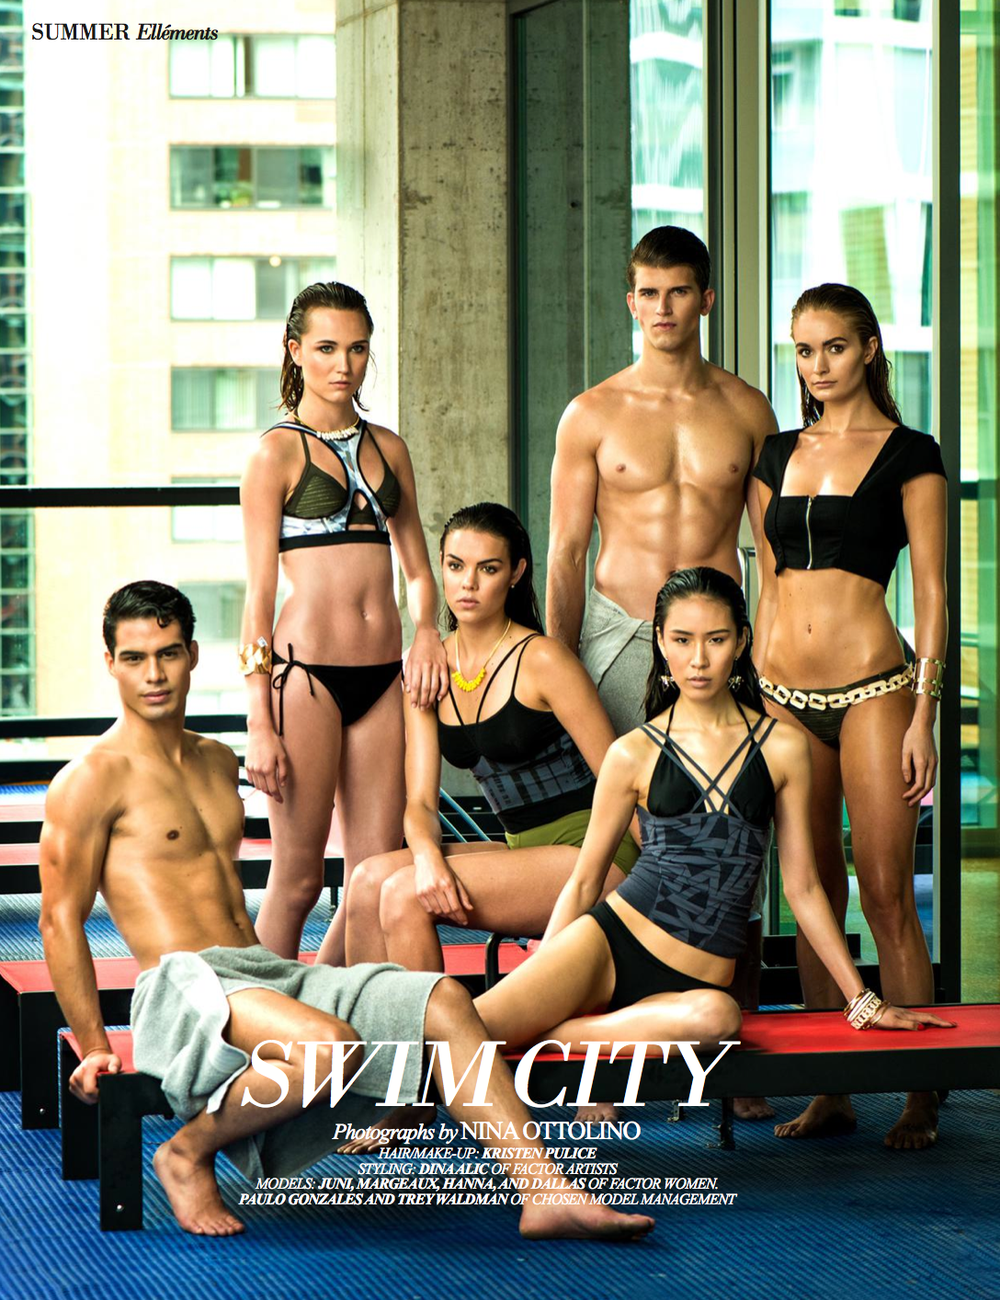 nina-ottolino-swim-city-ellements-magazine-chicago-editorial1